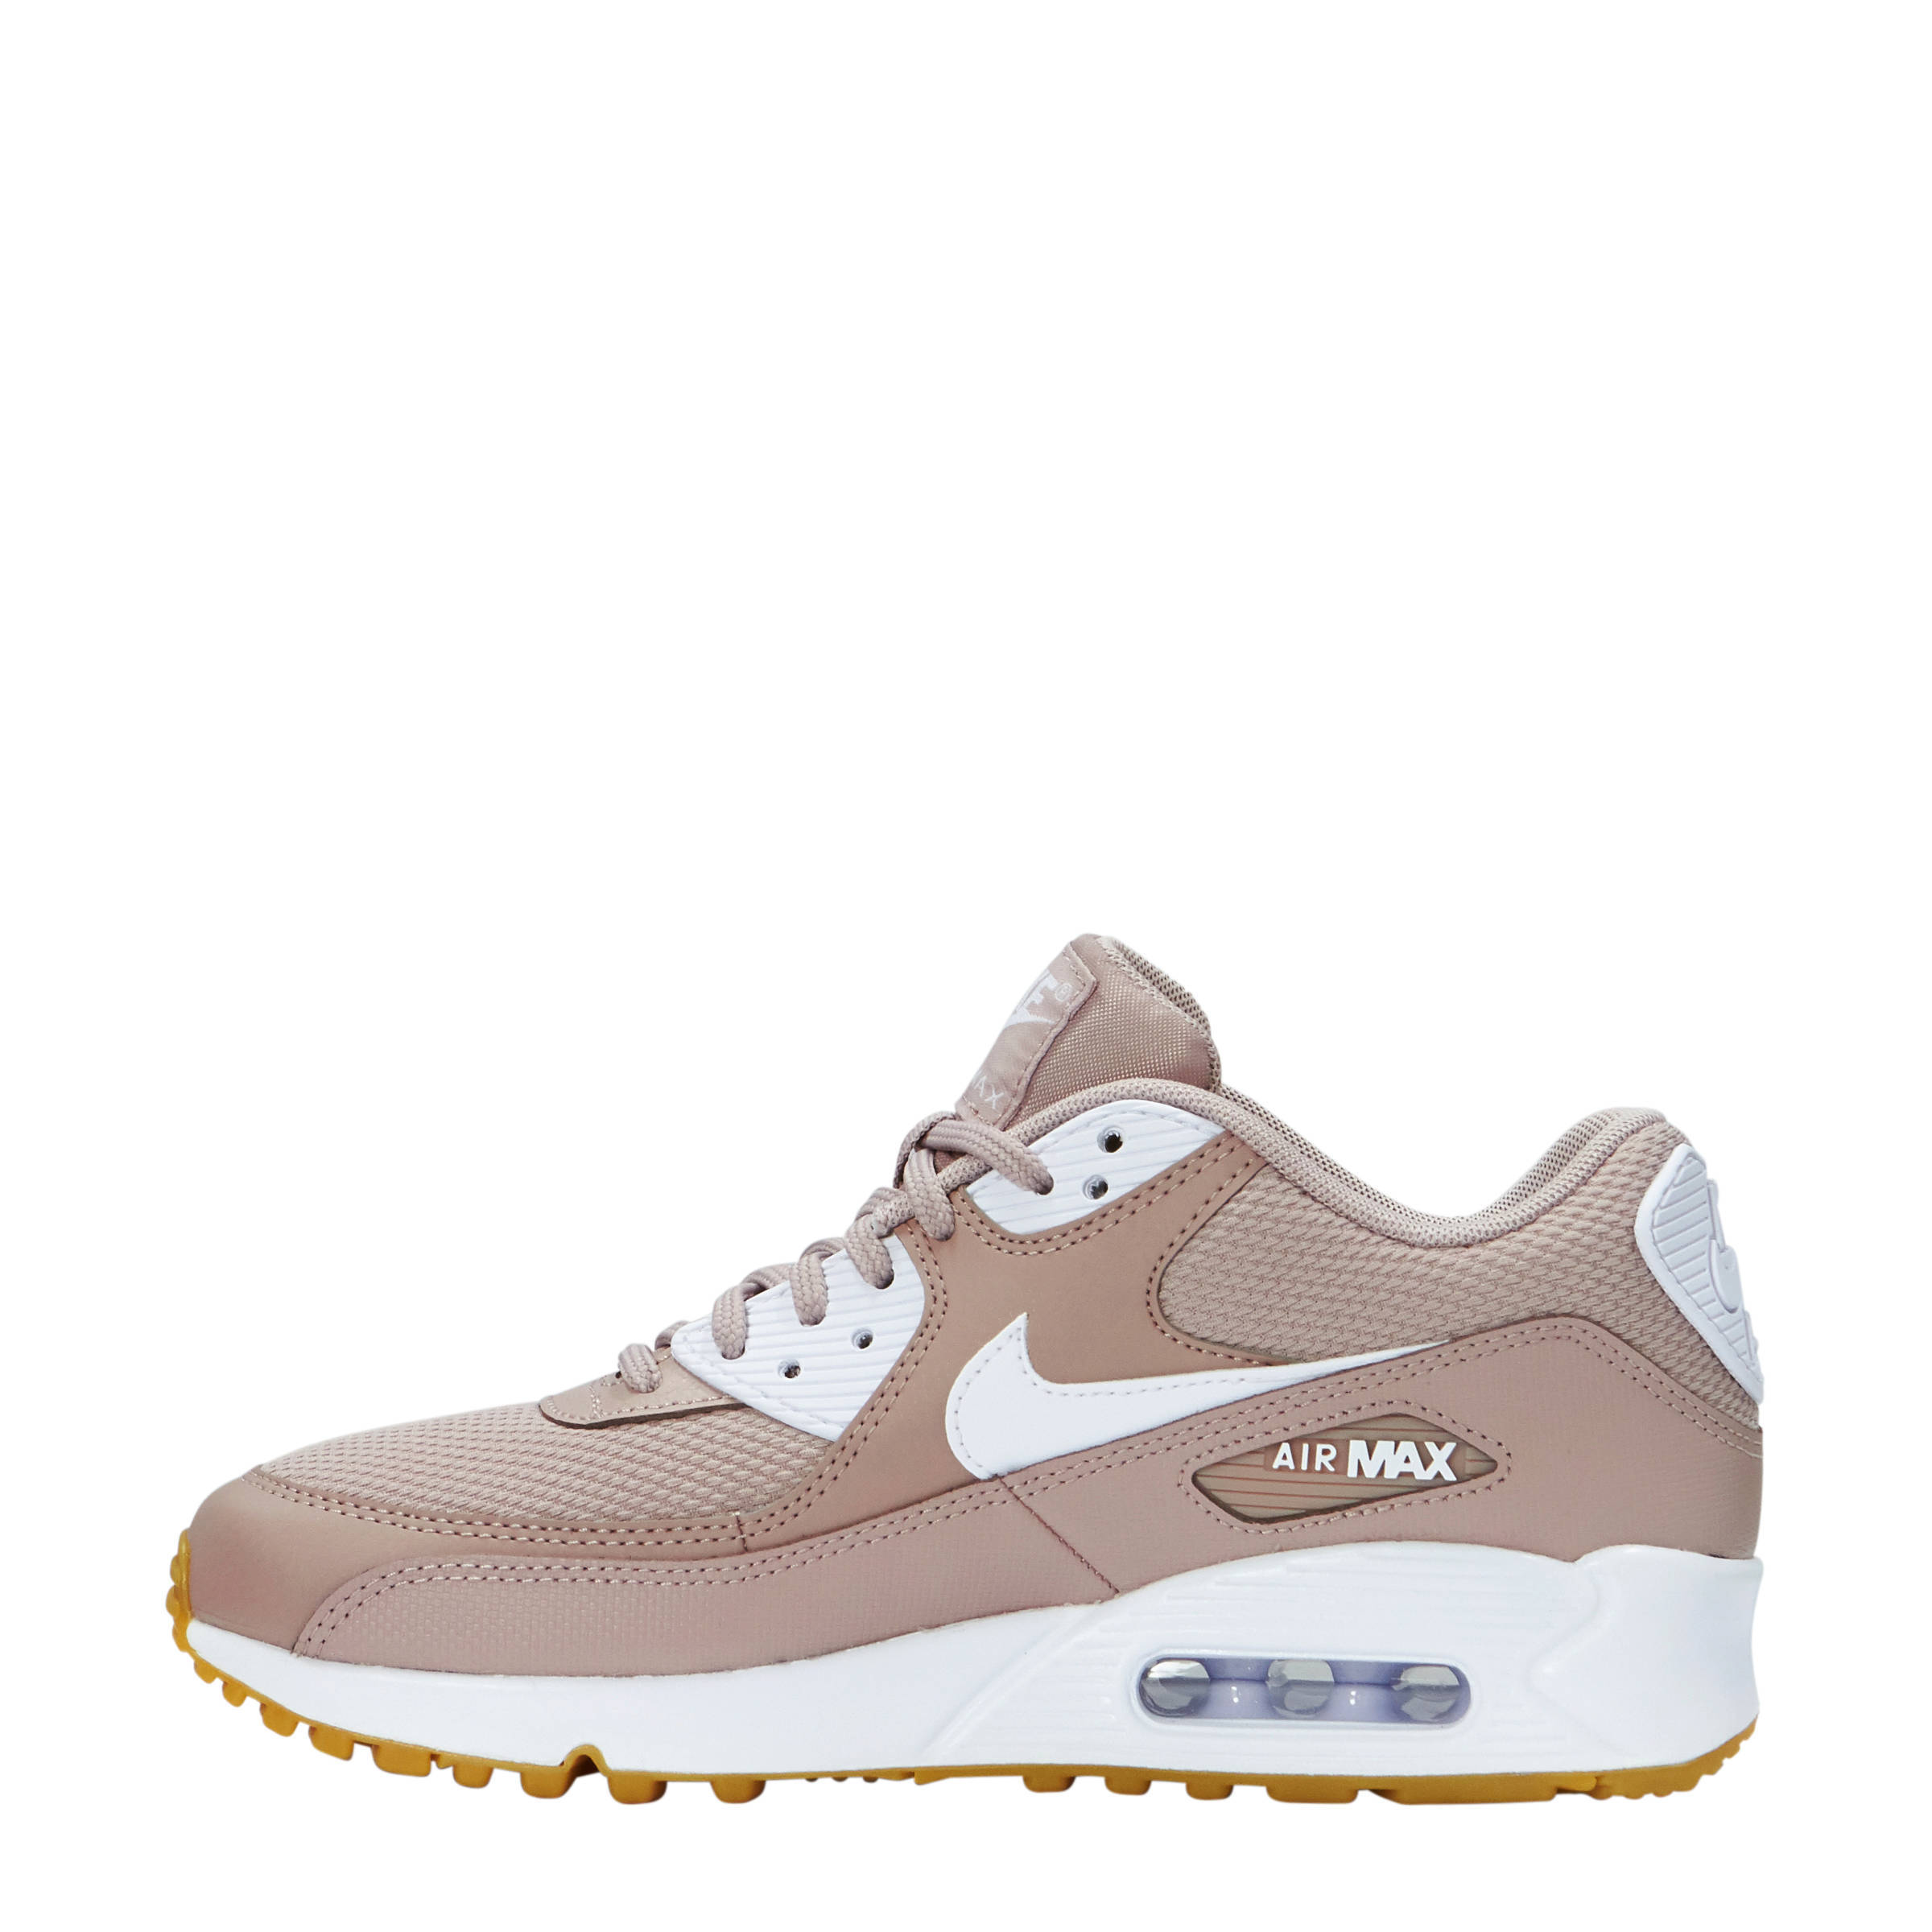 Air Max 90 Prem sneakers